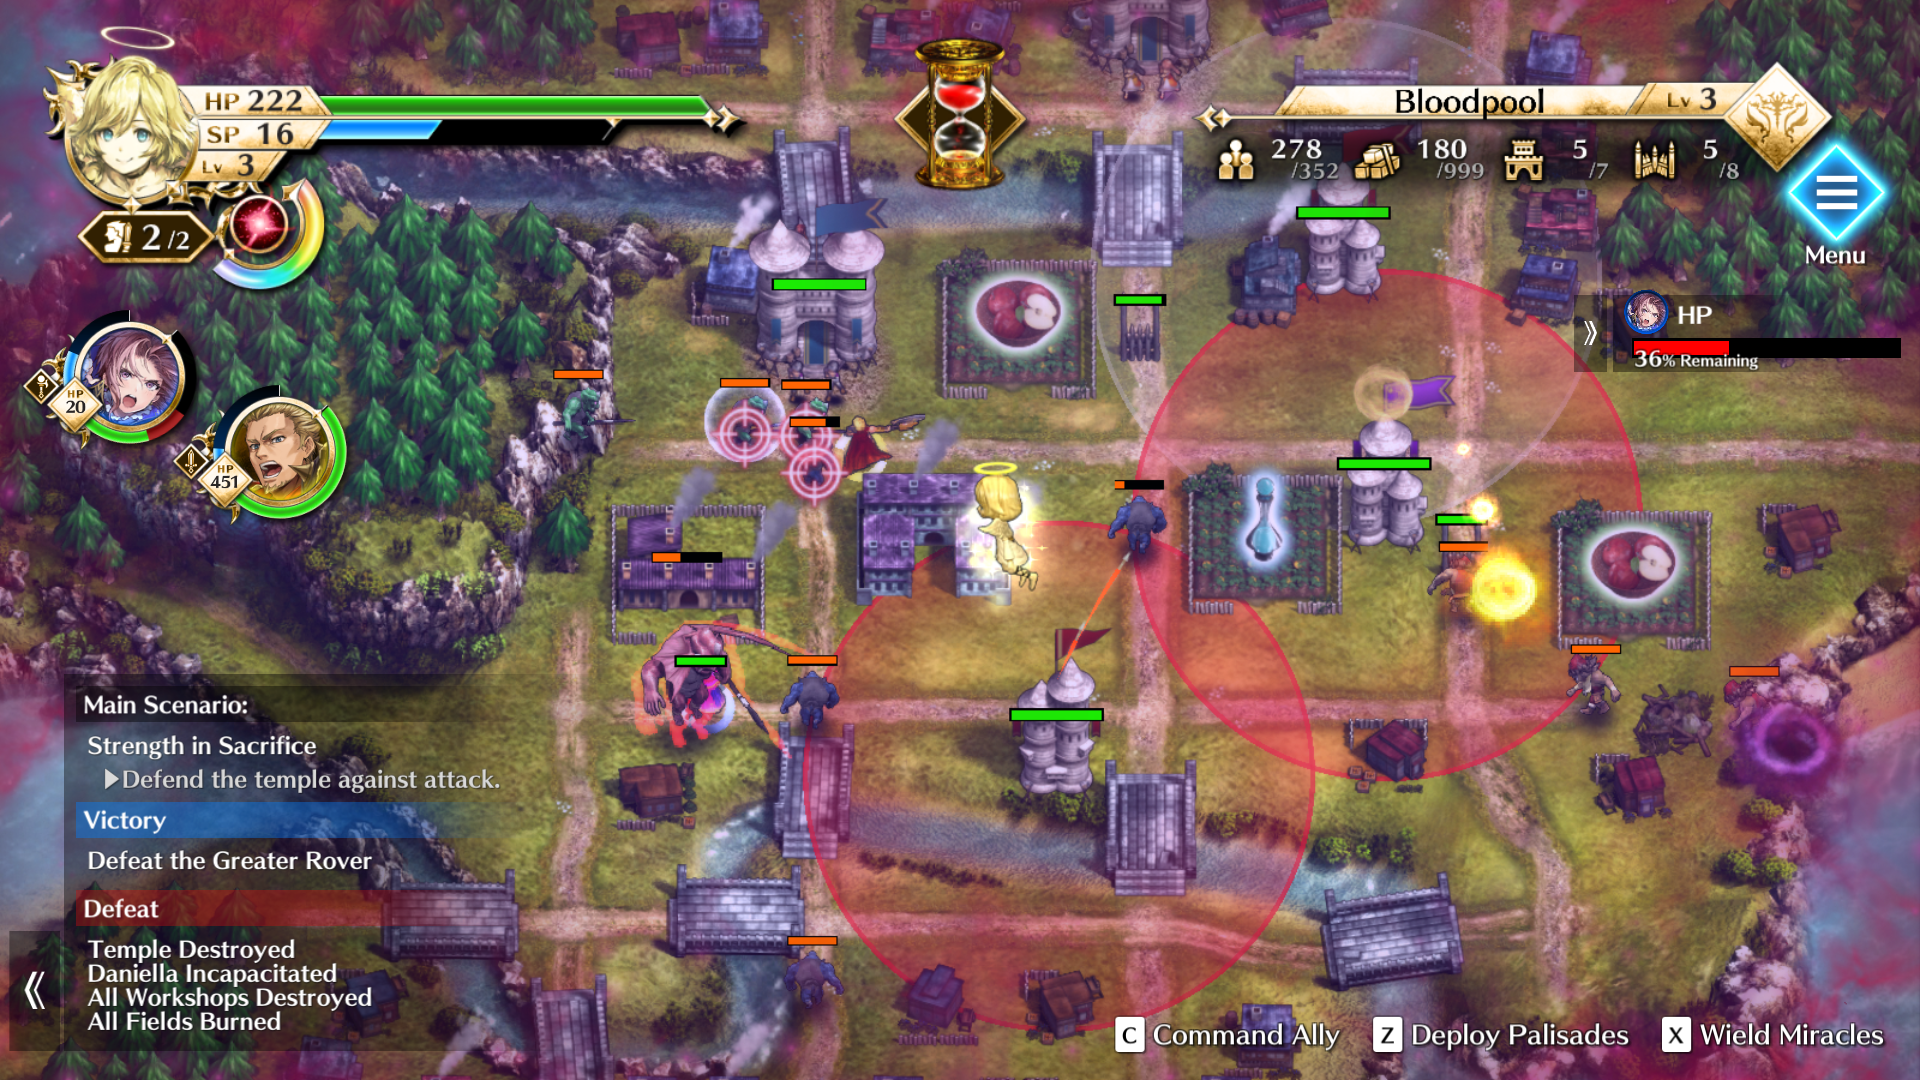 Gameplay screenshot of Actraiser Renaissance, showing a settlement being defended against enemies.